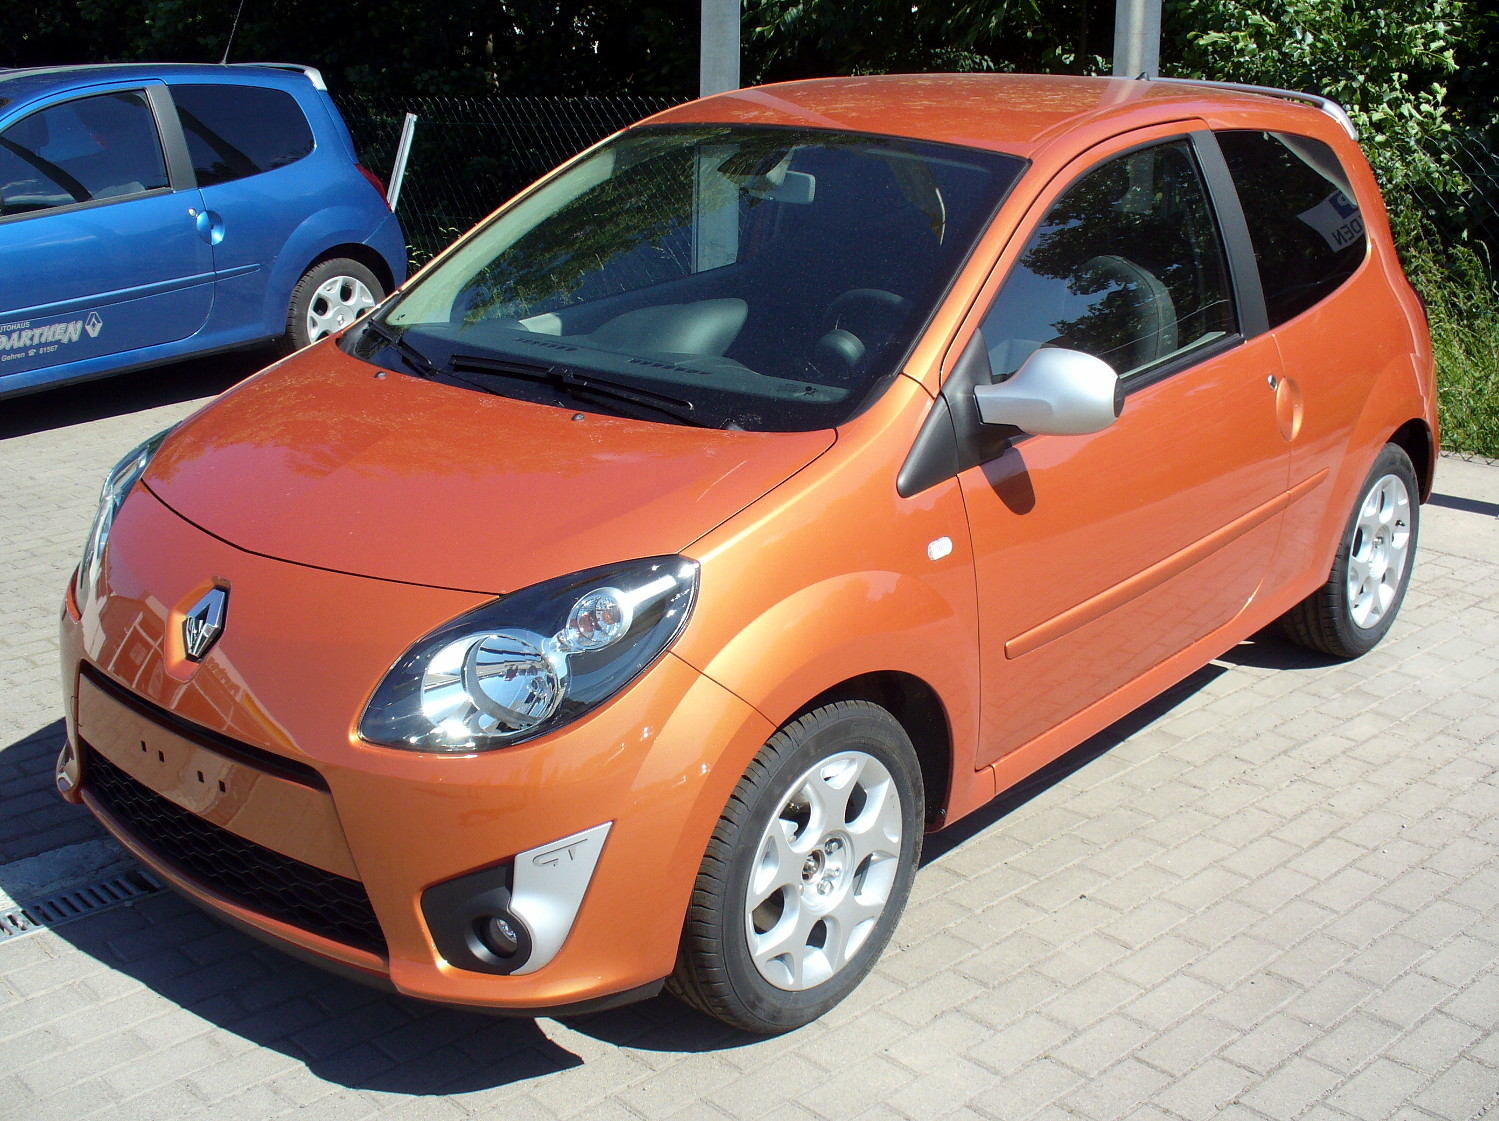 orange avg 20080907211354!Renault Twingo II Phse I GT Funken-Orange